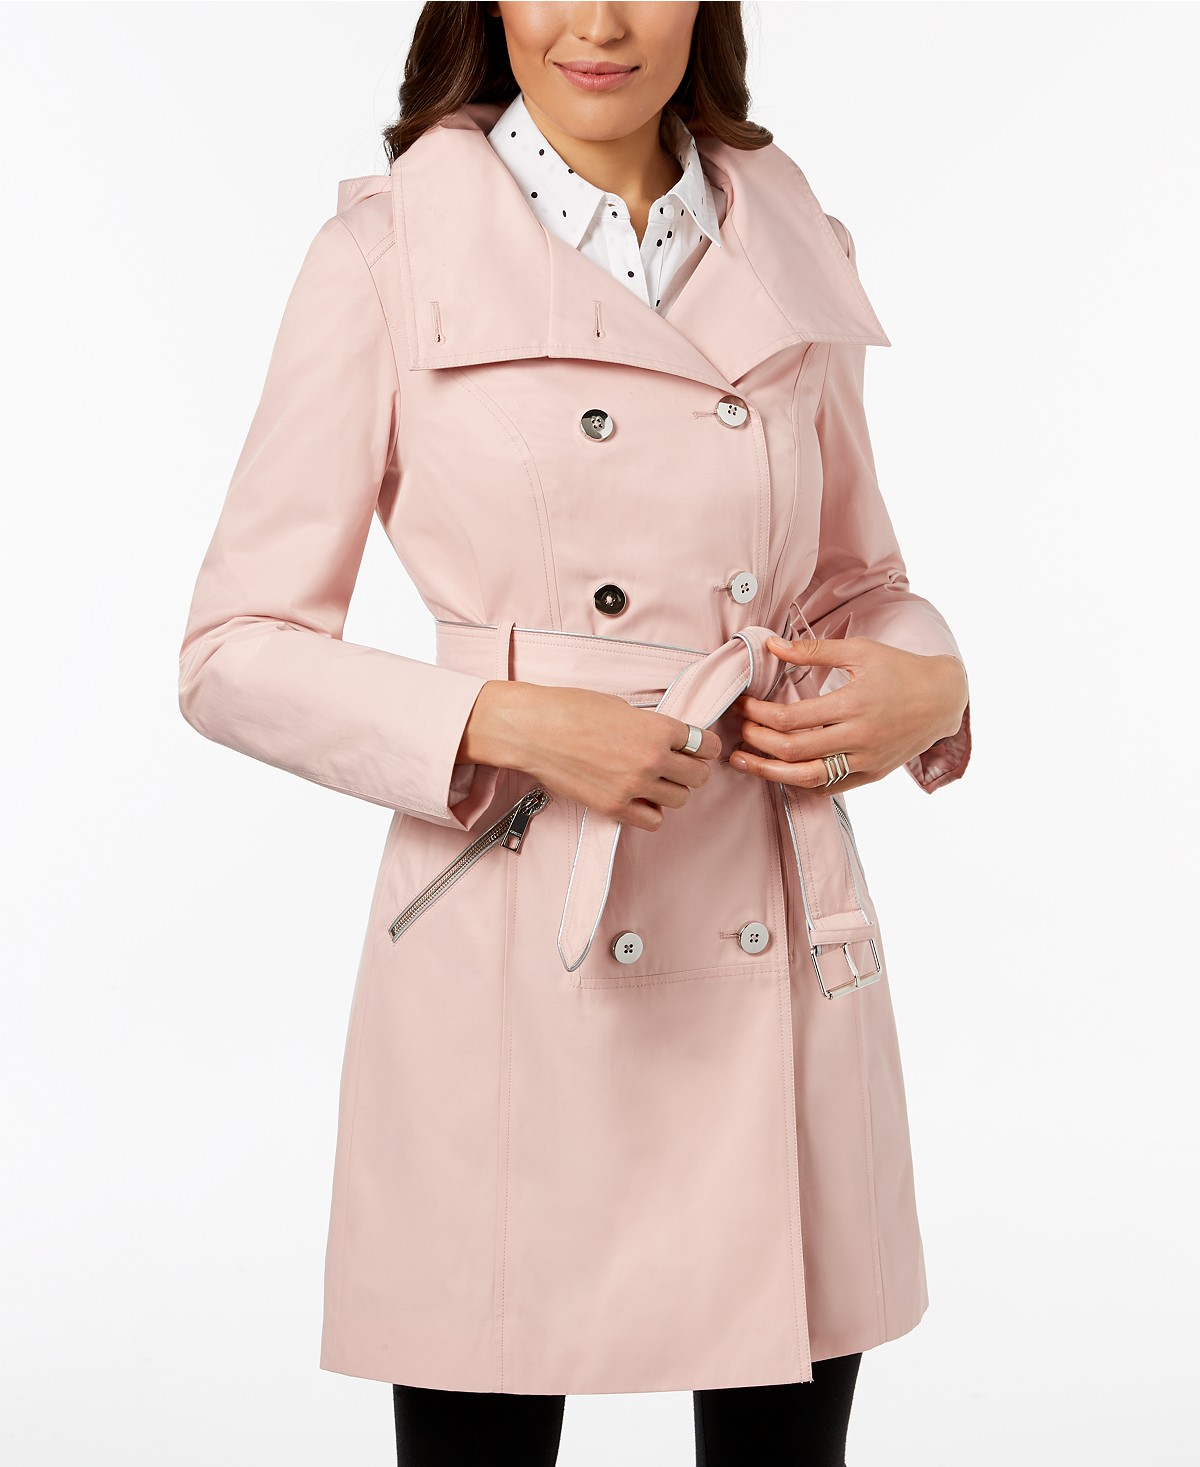 guess-pink-trench-coat